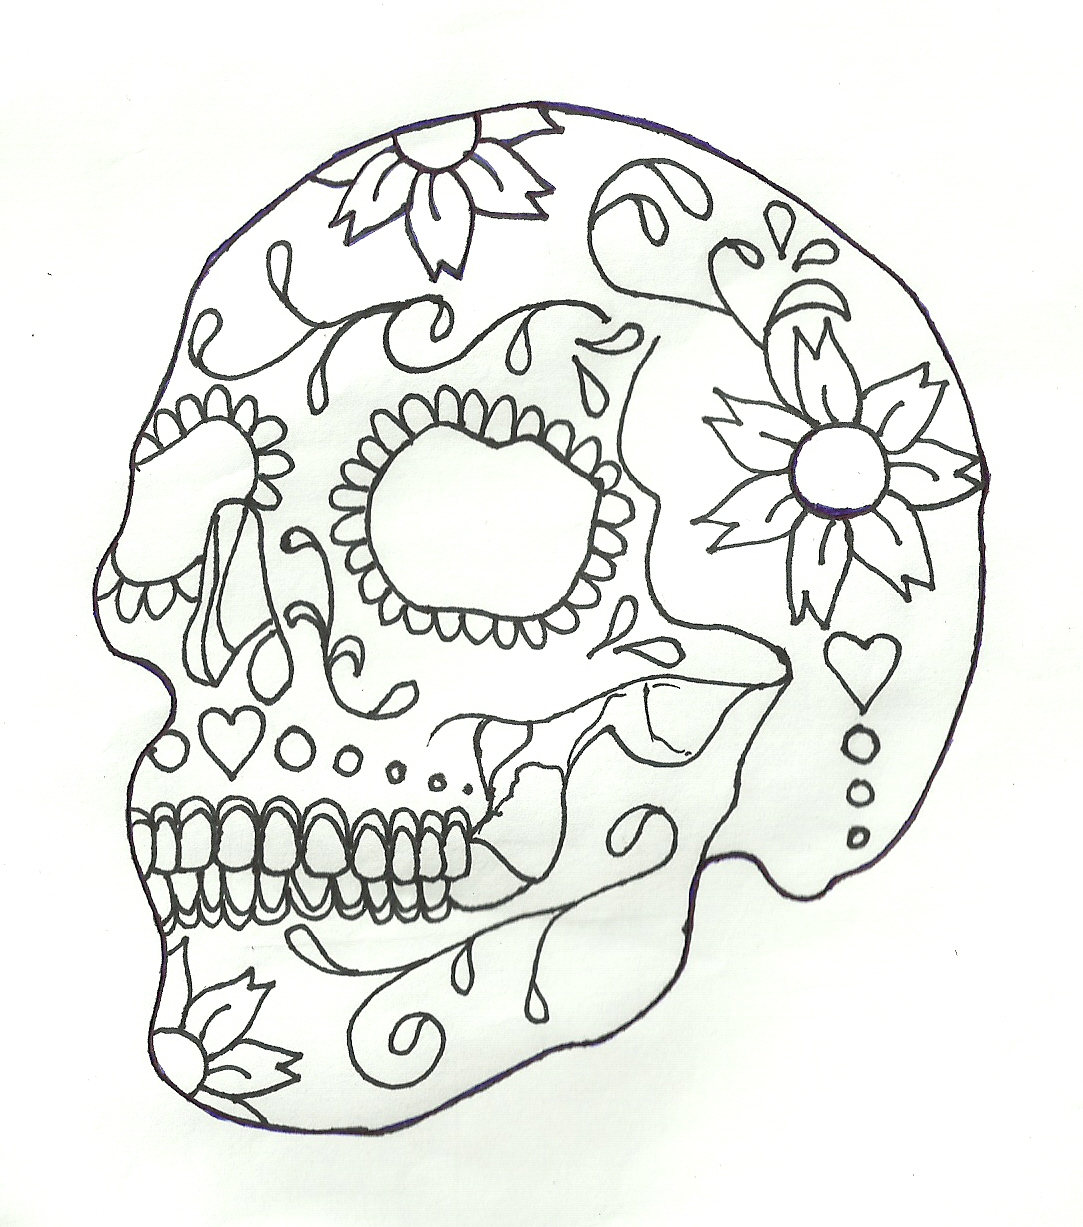 sugar skull line drawing at getdrawings com free for personal use